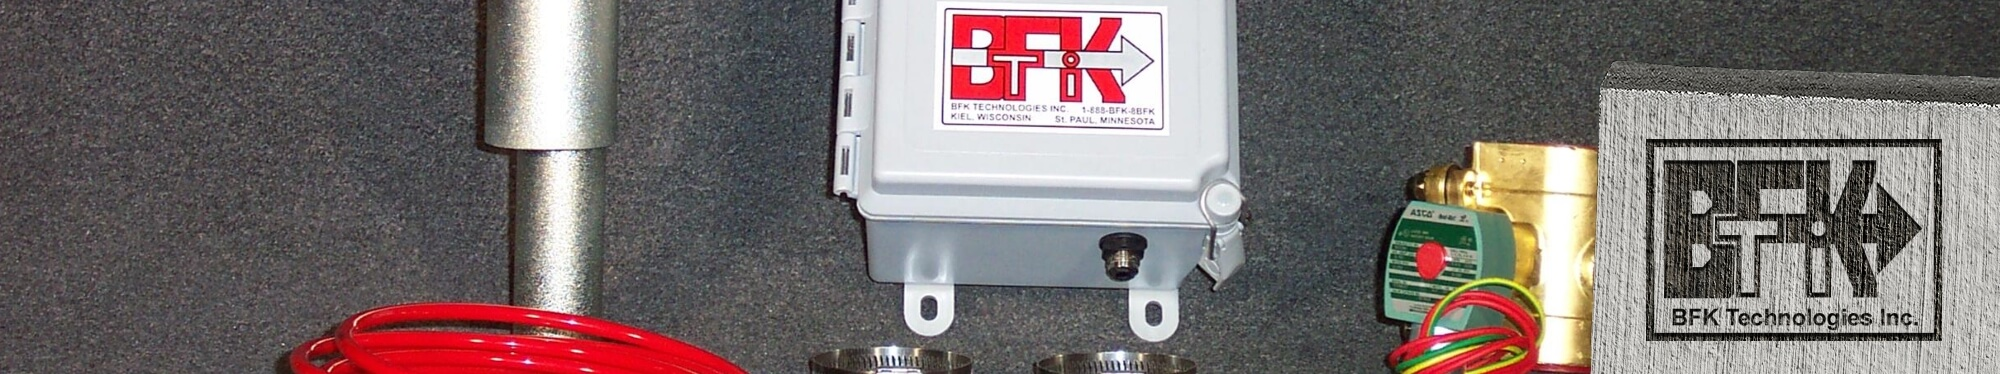 BFK Technologies Concrete Reclaimers Equipment